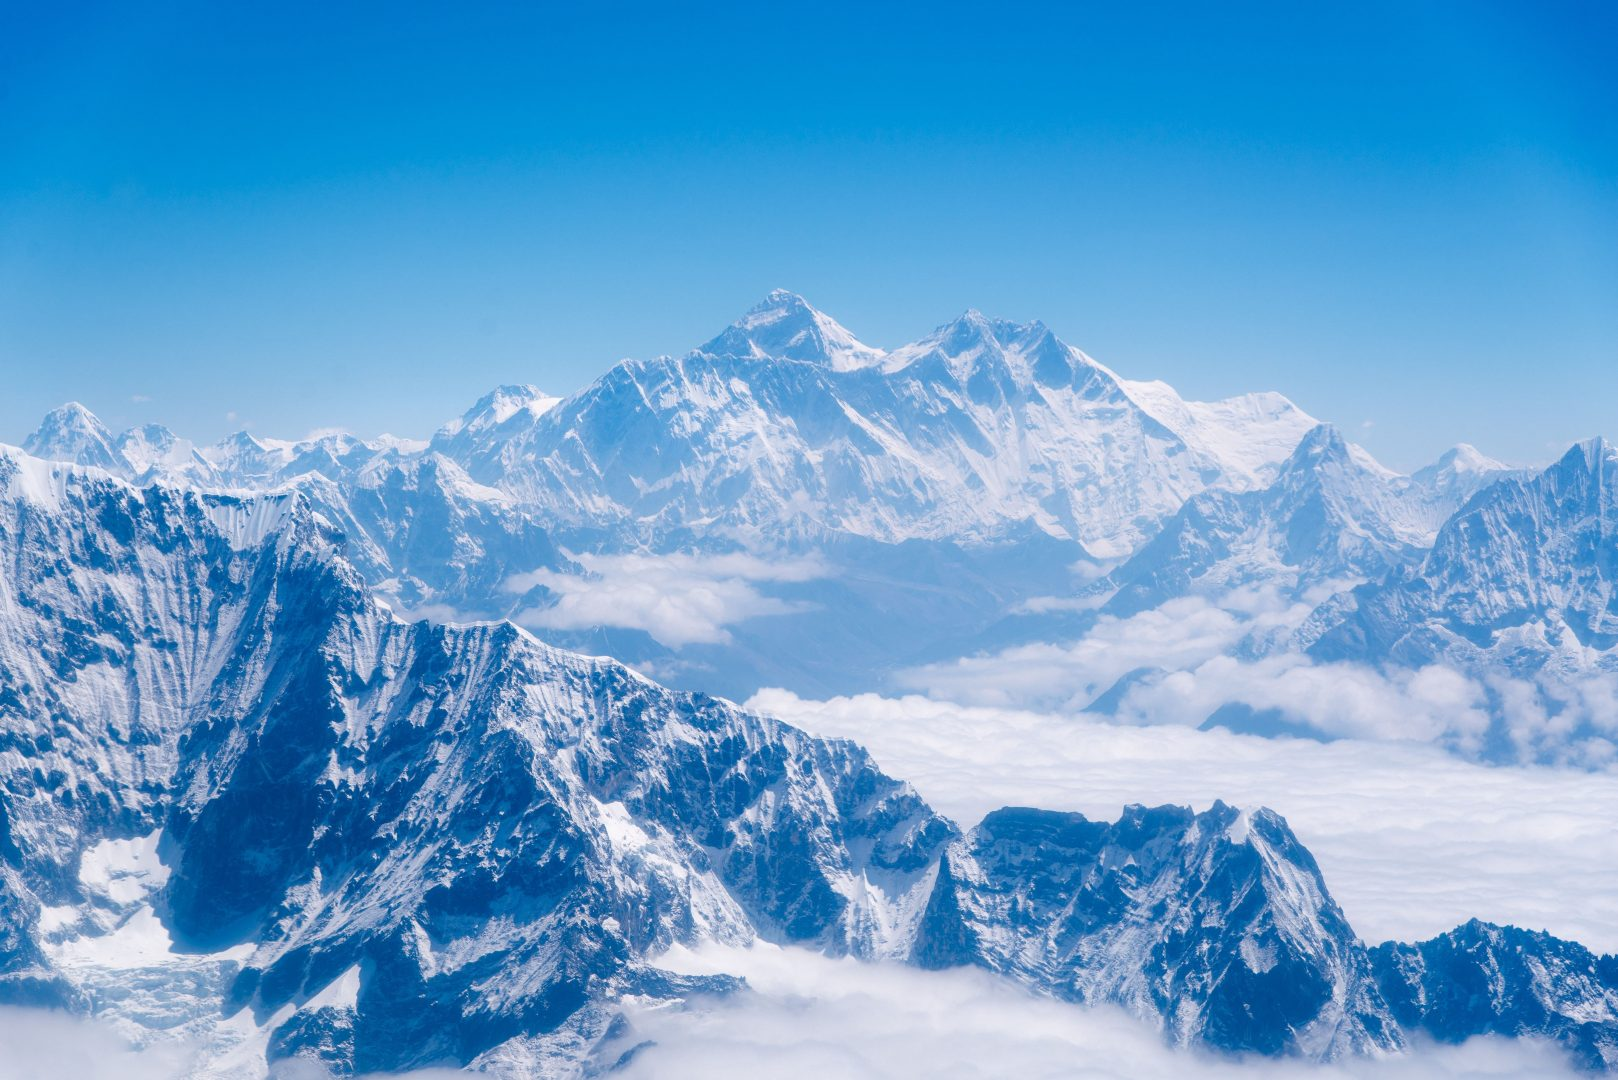 everest-unsplash-3-min